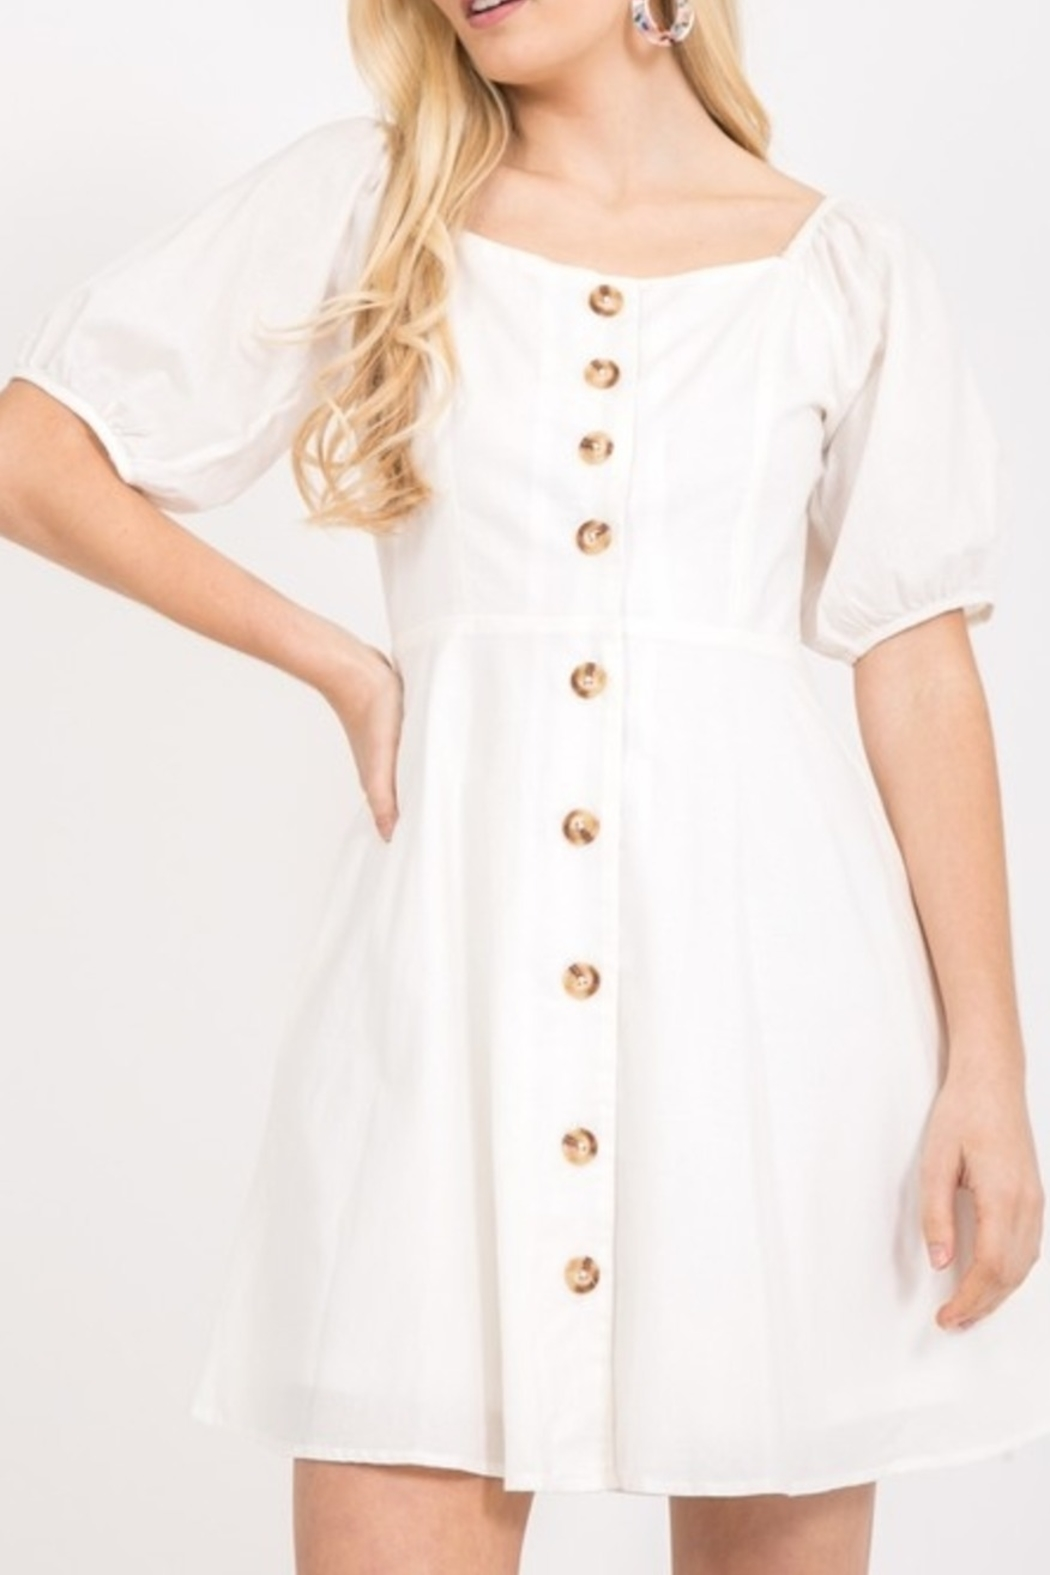 LoveRiche Southern Babe dress - Main Image